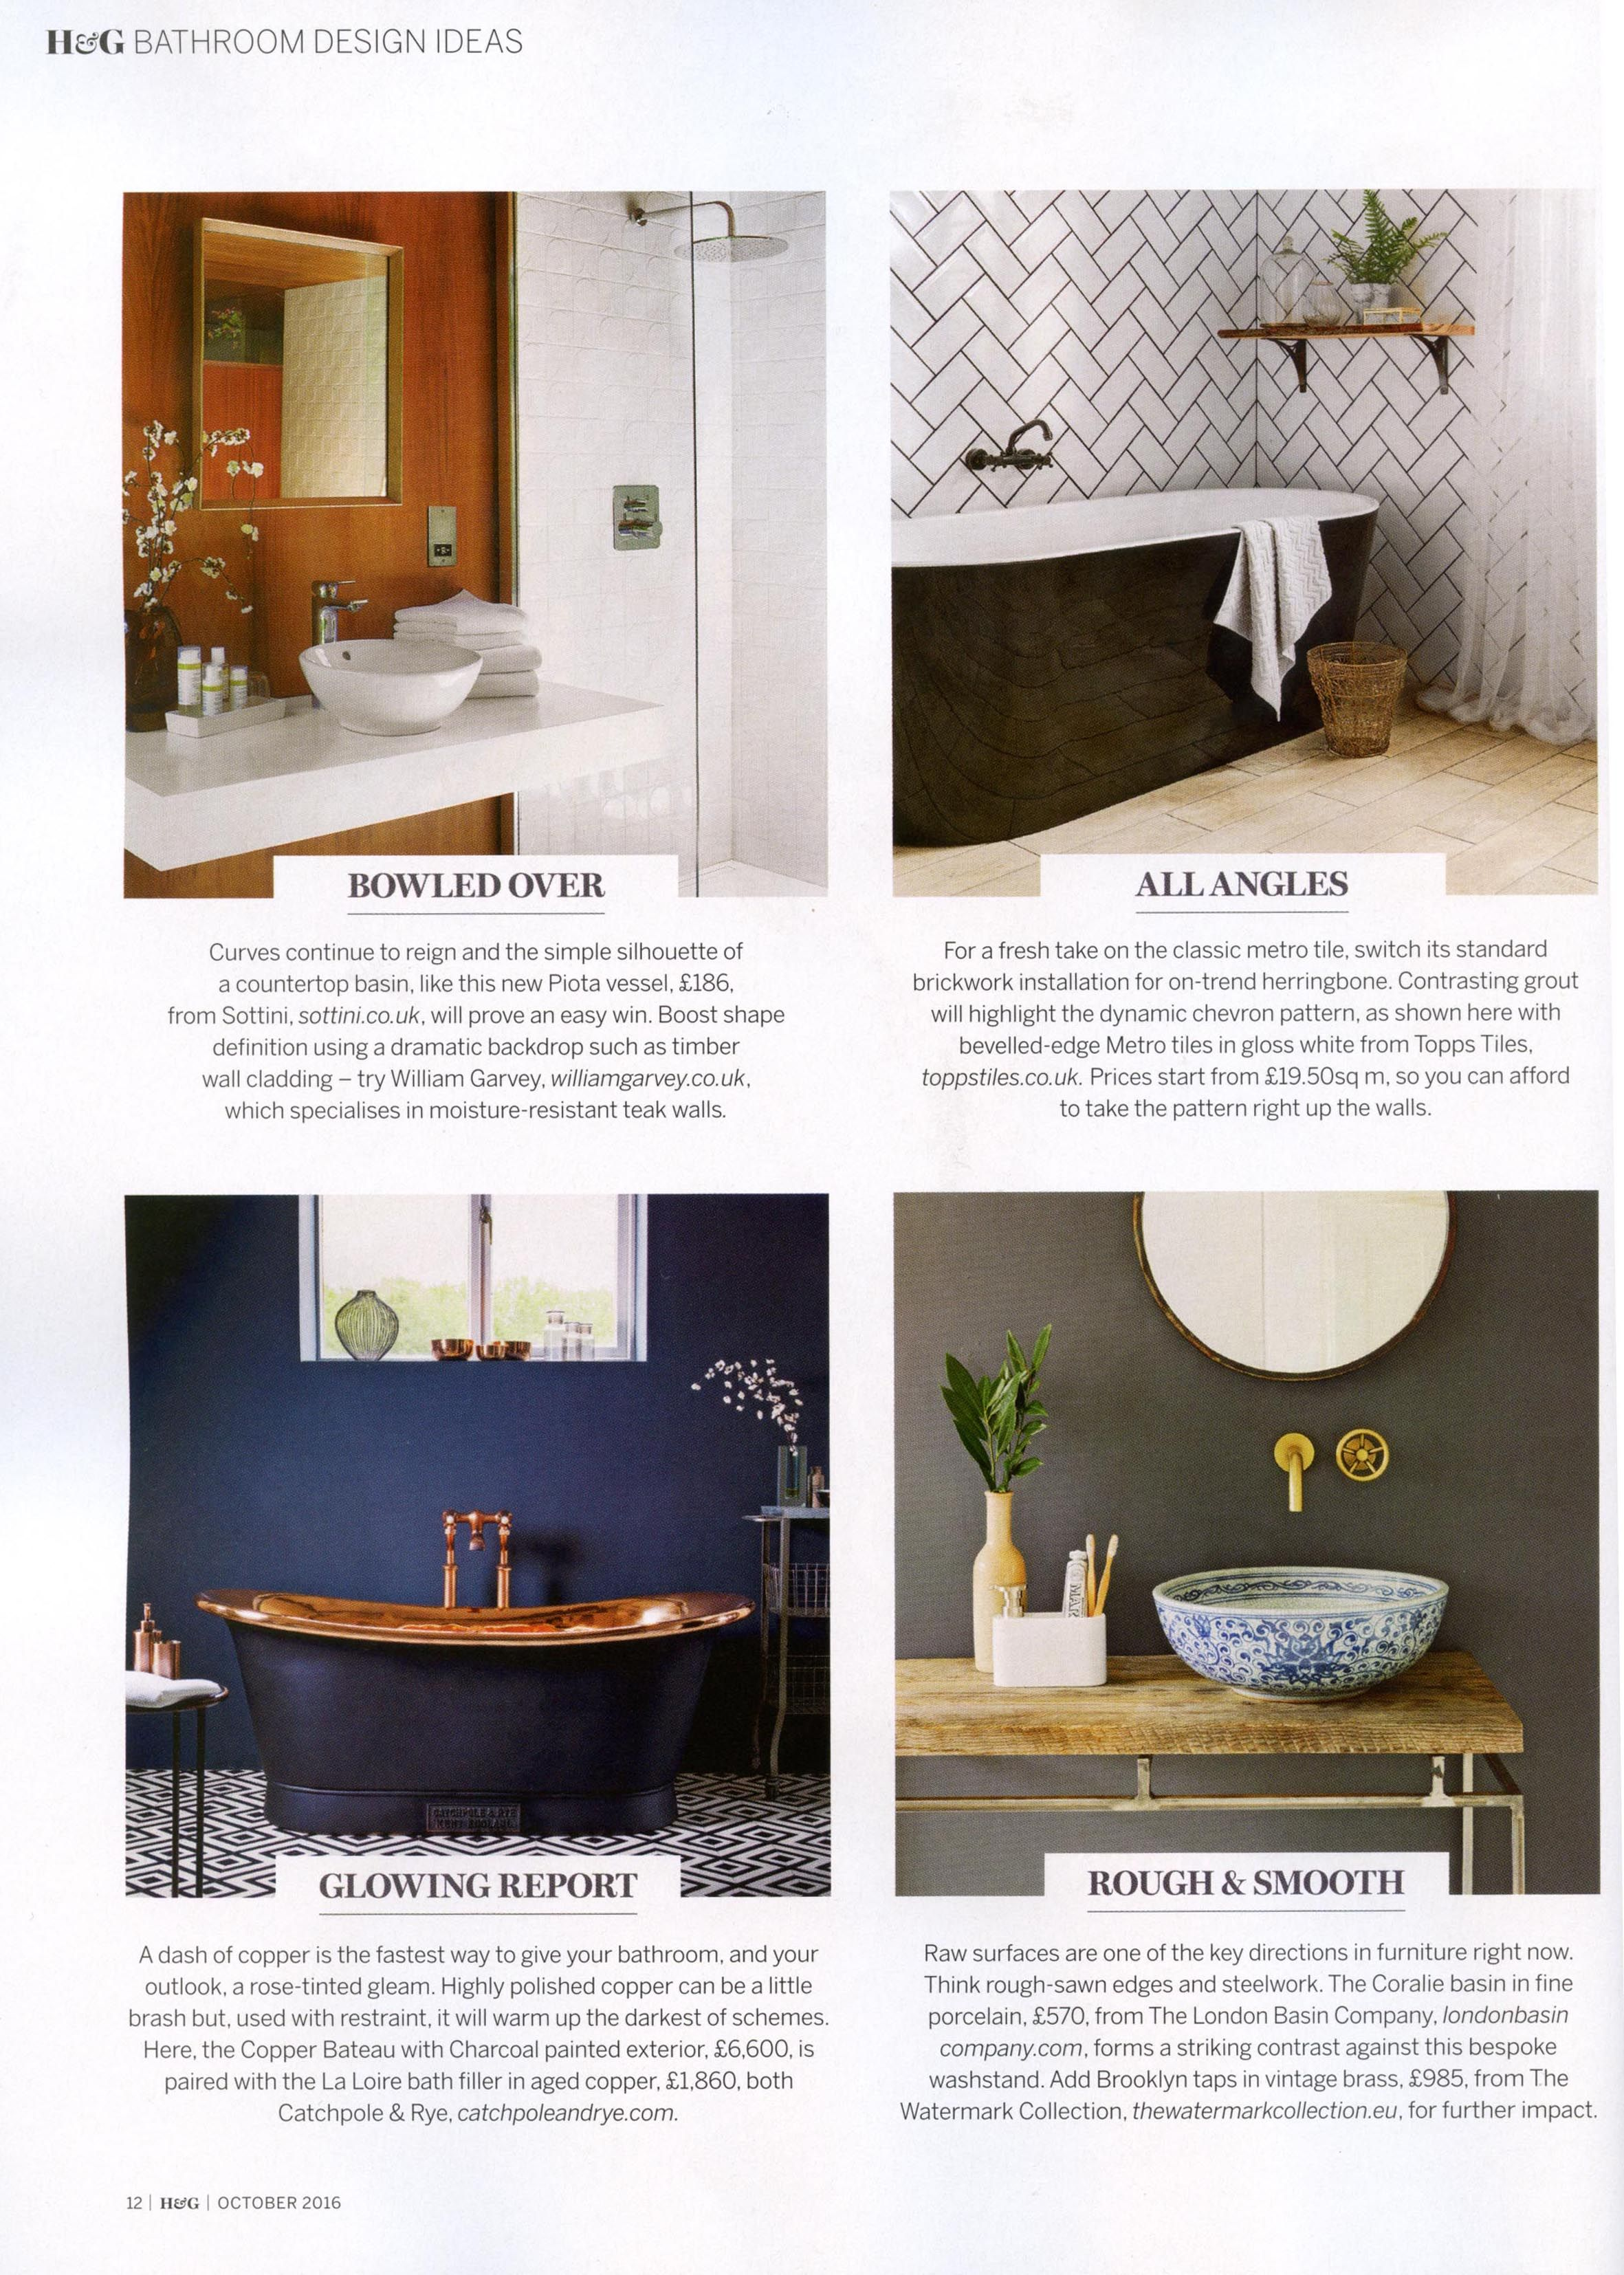 The Brooklyn taps in vintage brass from The Watermark Collection. http://www.thewatermarkcollection.eu/ Homes & Gardens October 2016